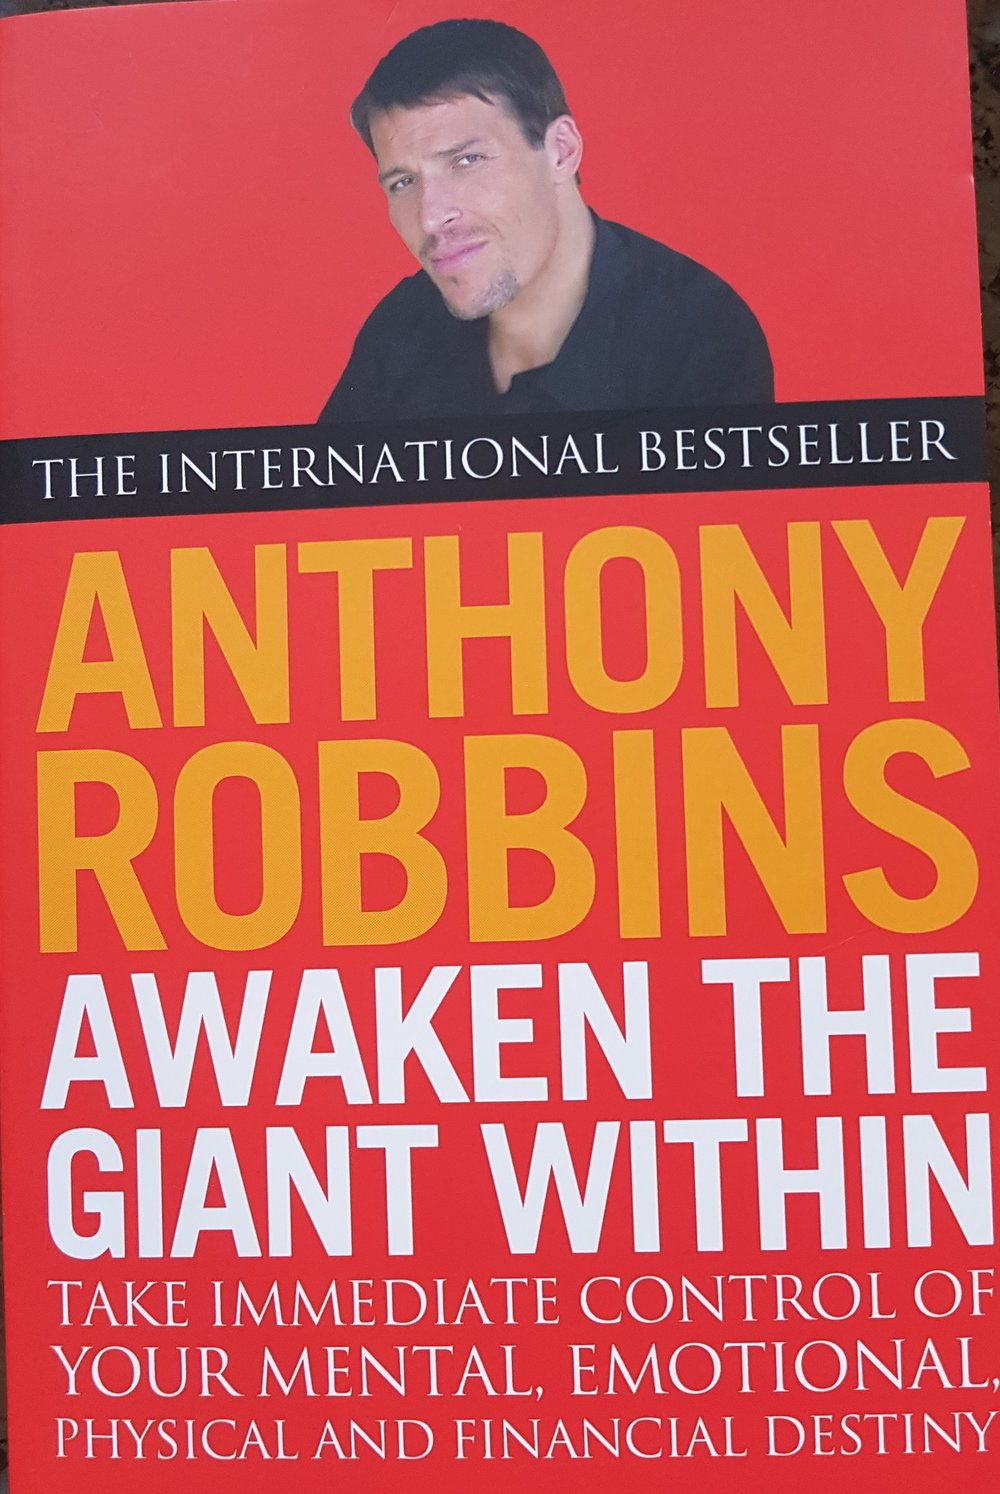 Tony+Robbins+Awaken+The+Giant+Within